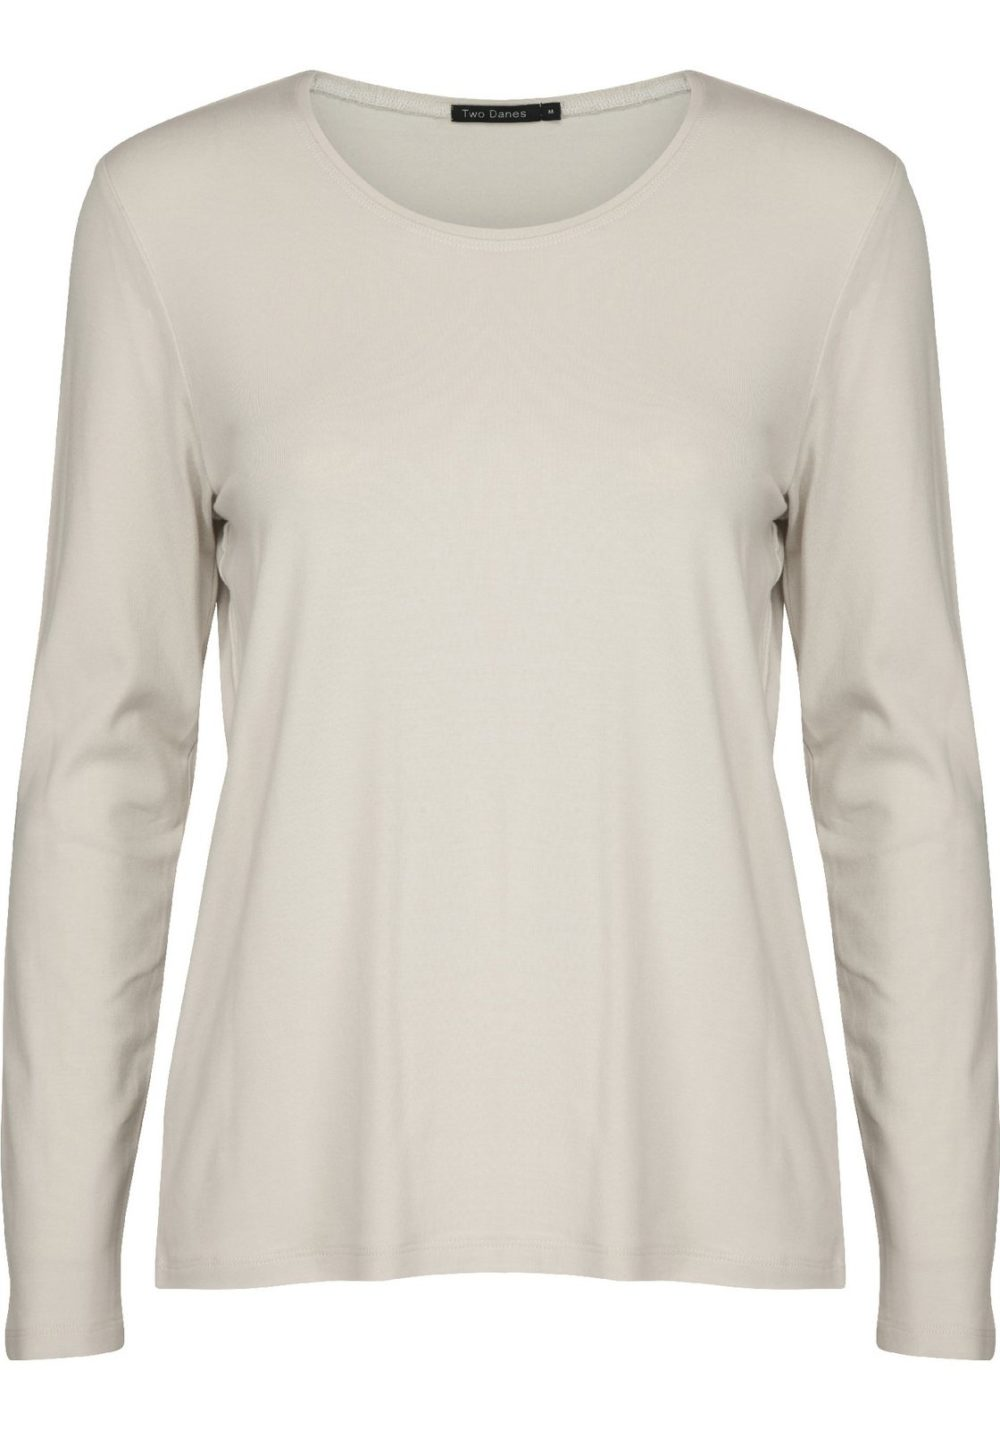 Betty T-shirt Beige 1